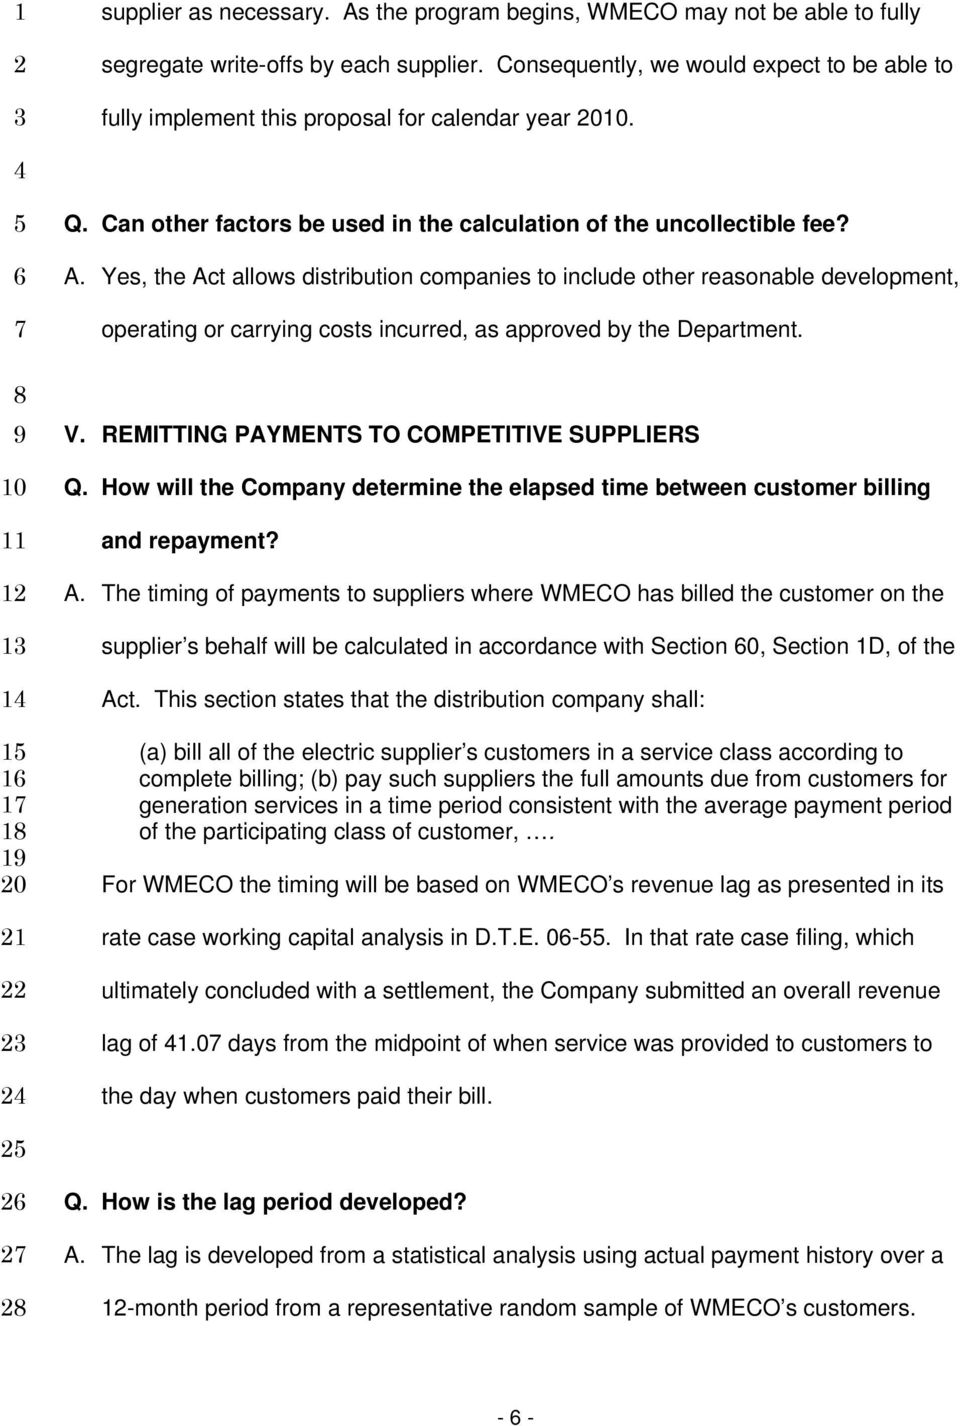 Yes, the Act allows distribution companies to include other reasonable development, operating or carrying costs incurred, as approved by the Department. 1 1 1 0 1 V.